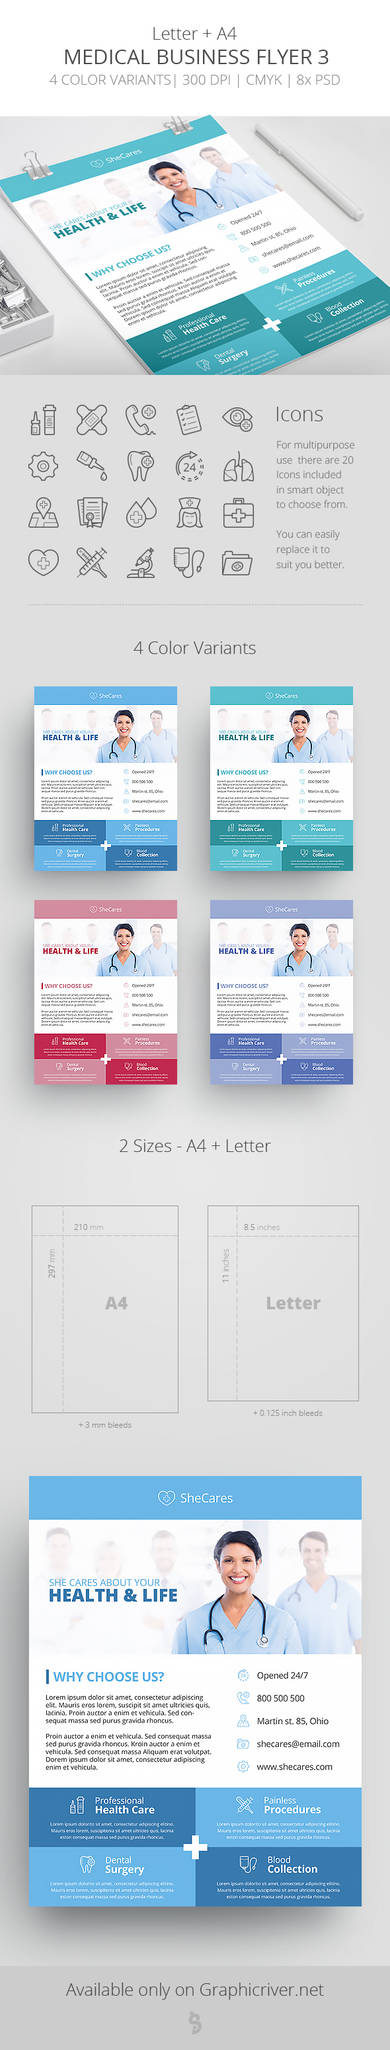 Medical Business Flyer Template 3